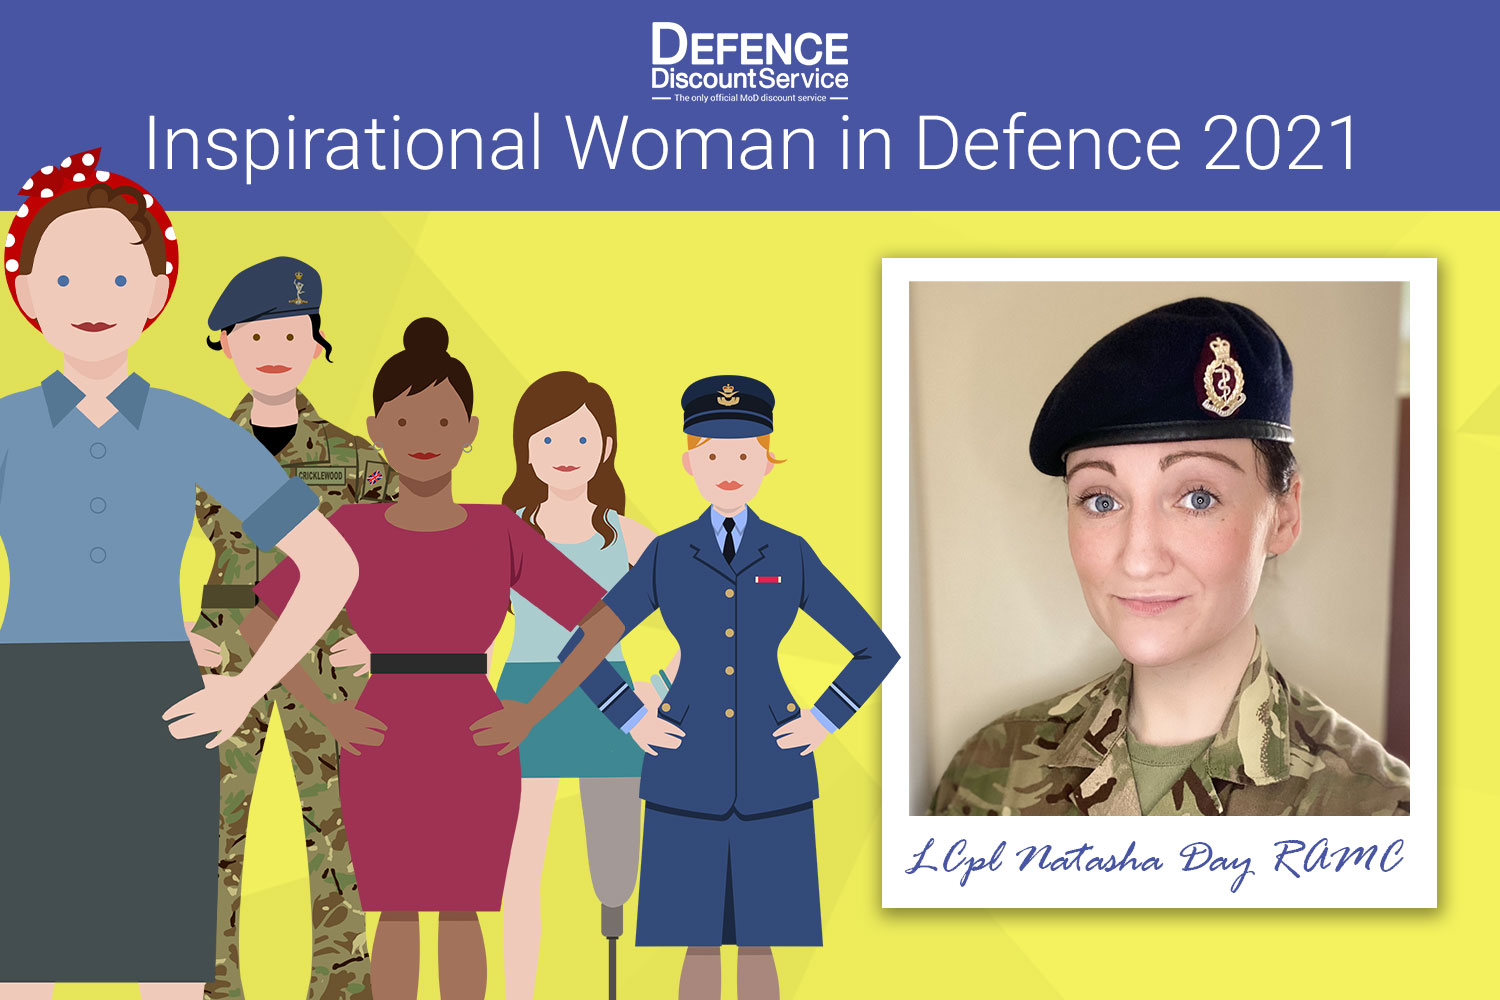 Defence Breastfeeding Network founder wins Inspirational Woman in Defence 2021 title